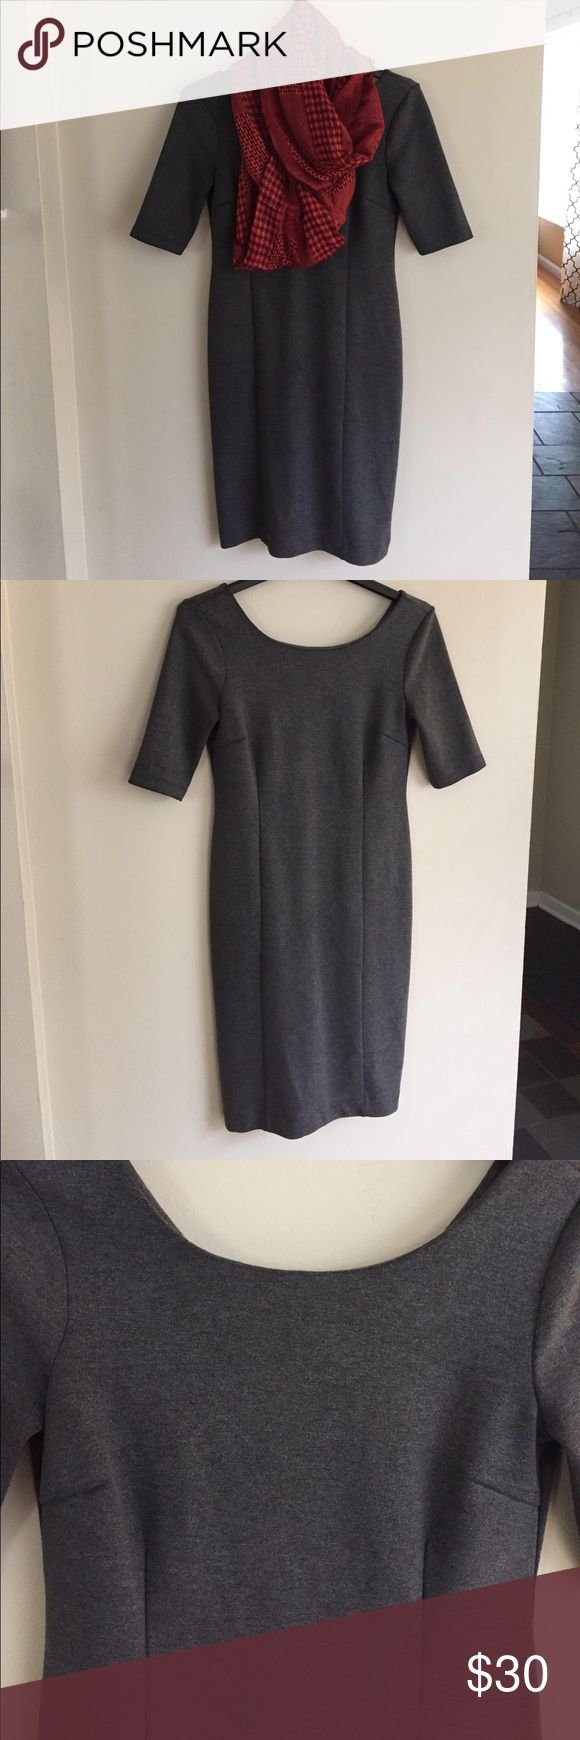 Banana Republic midi dress EUC. Zips up the back. Very flattering on. Has a slight silver shimmery look to it. Perfect for work or going out Banana Republic Dresses Midi